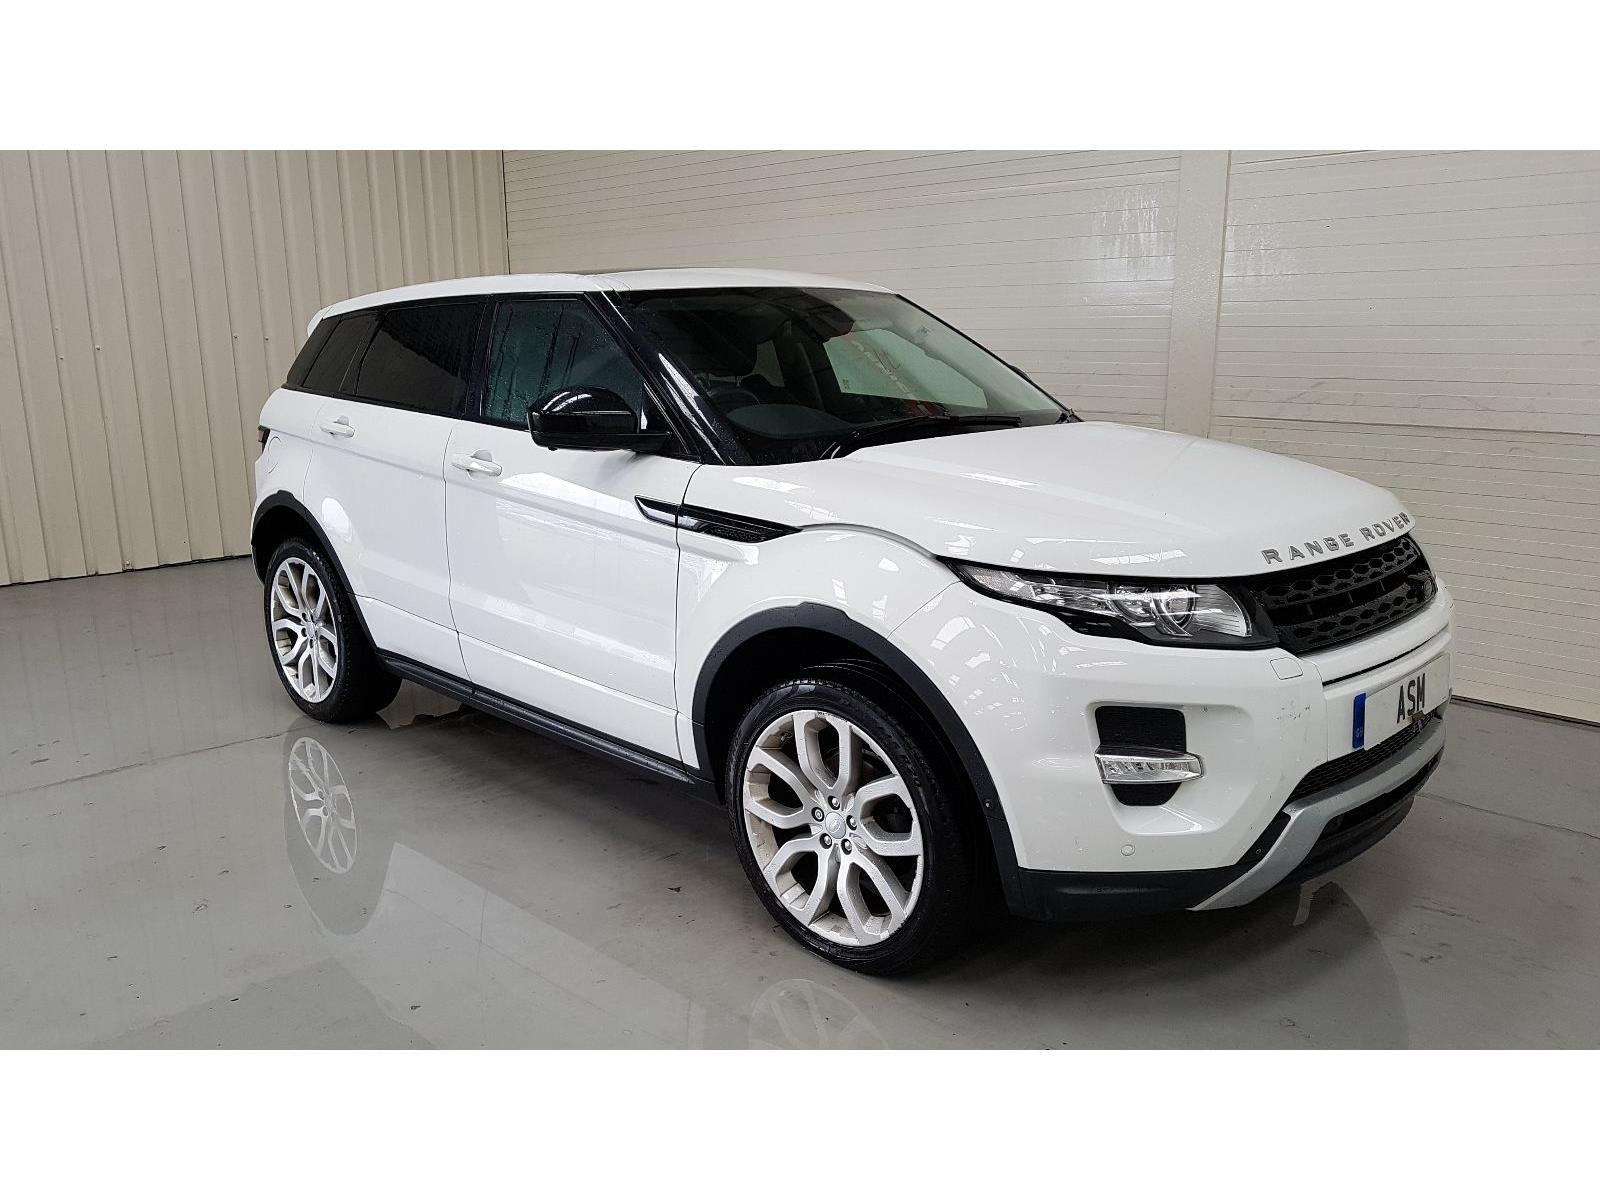 2015 Land Rover Range Rover Dynamic Lux SD4 4WD 2179cc Turbo Diesel Automatic 9 Speed 5 Door Estate